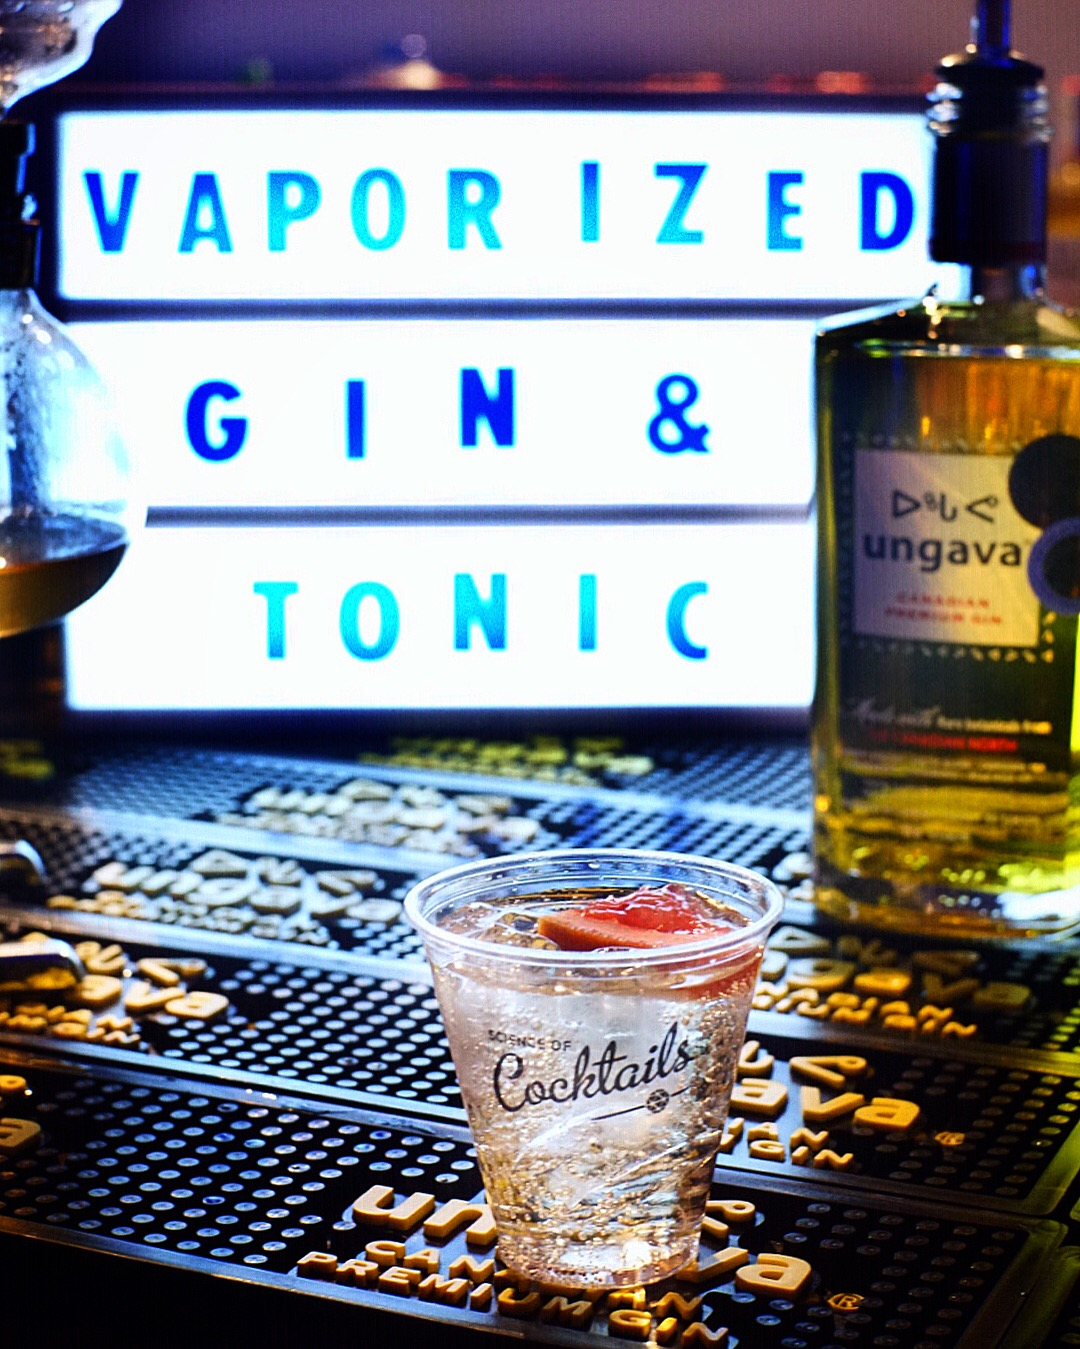 Vapourized Gin & Tonic: Ungava gin, grapefruit juice, soda, Fentimans tonic water, grapefruit vapour